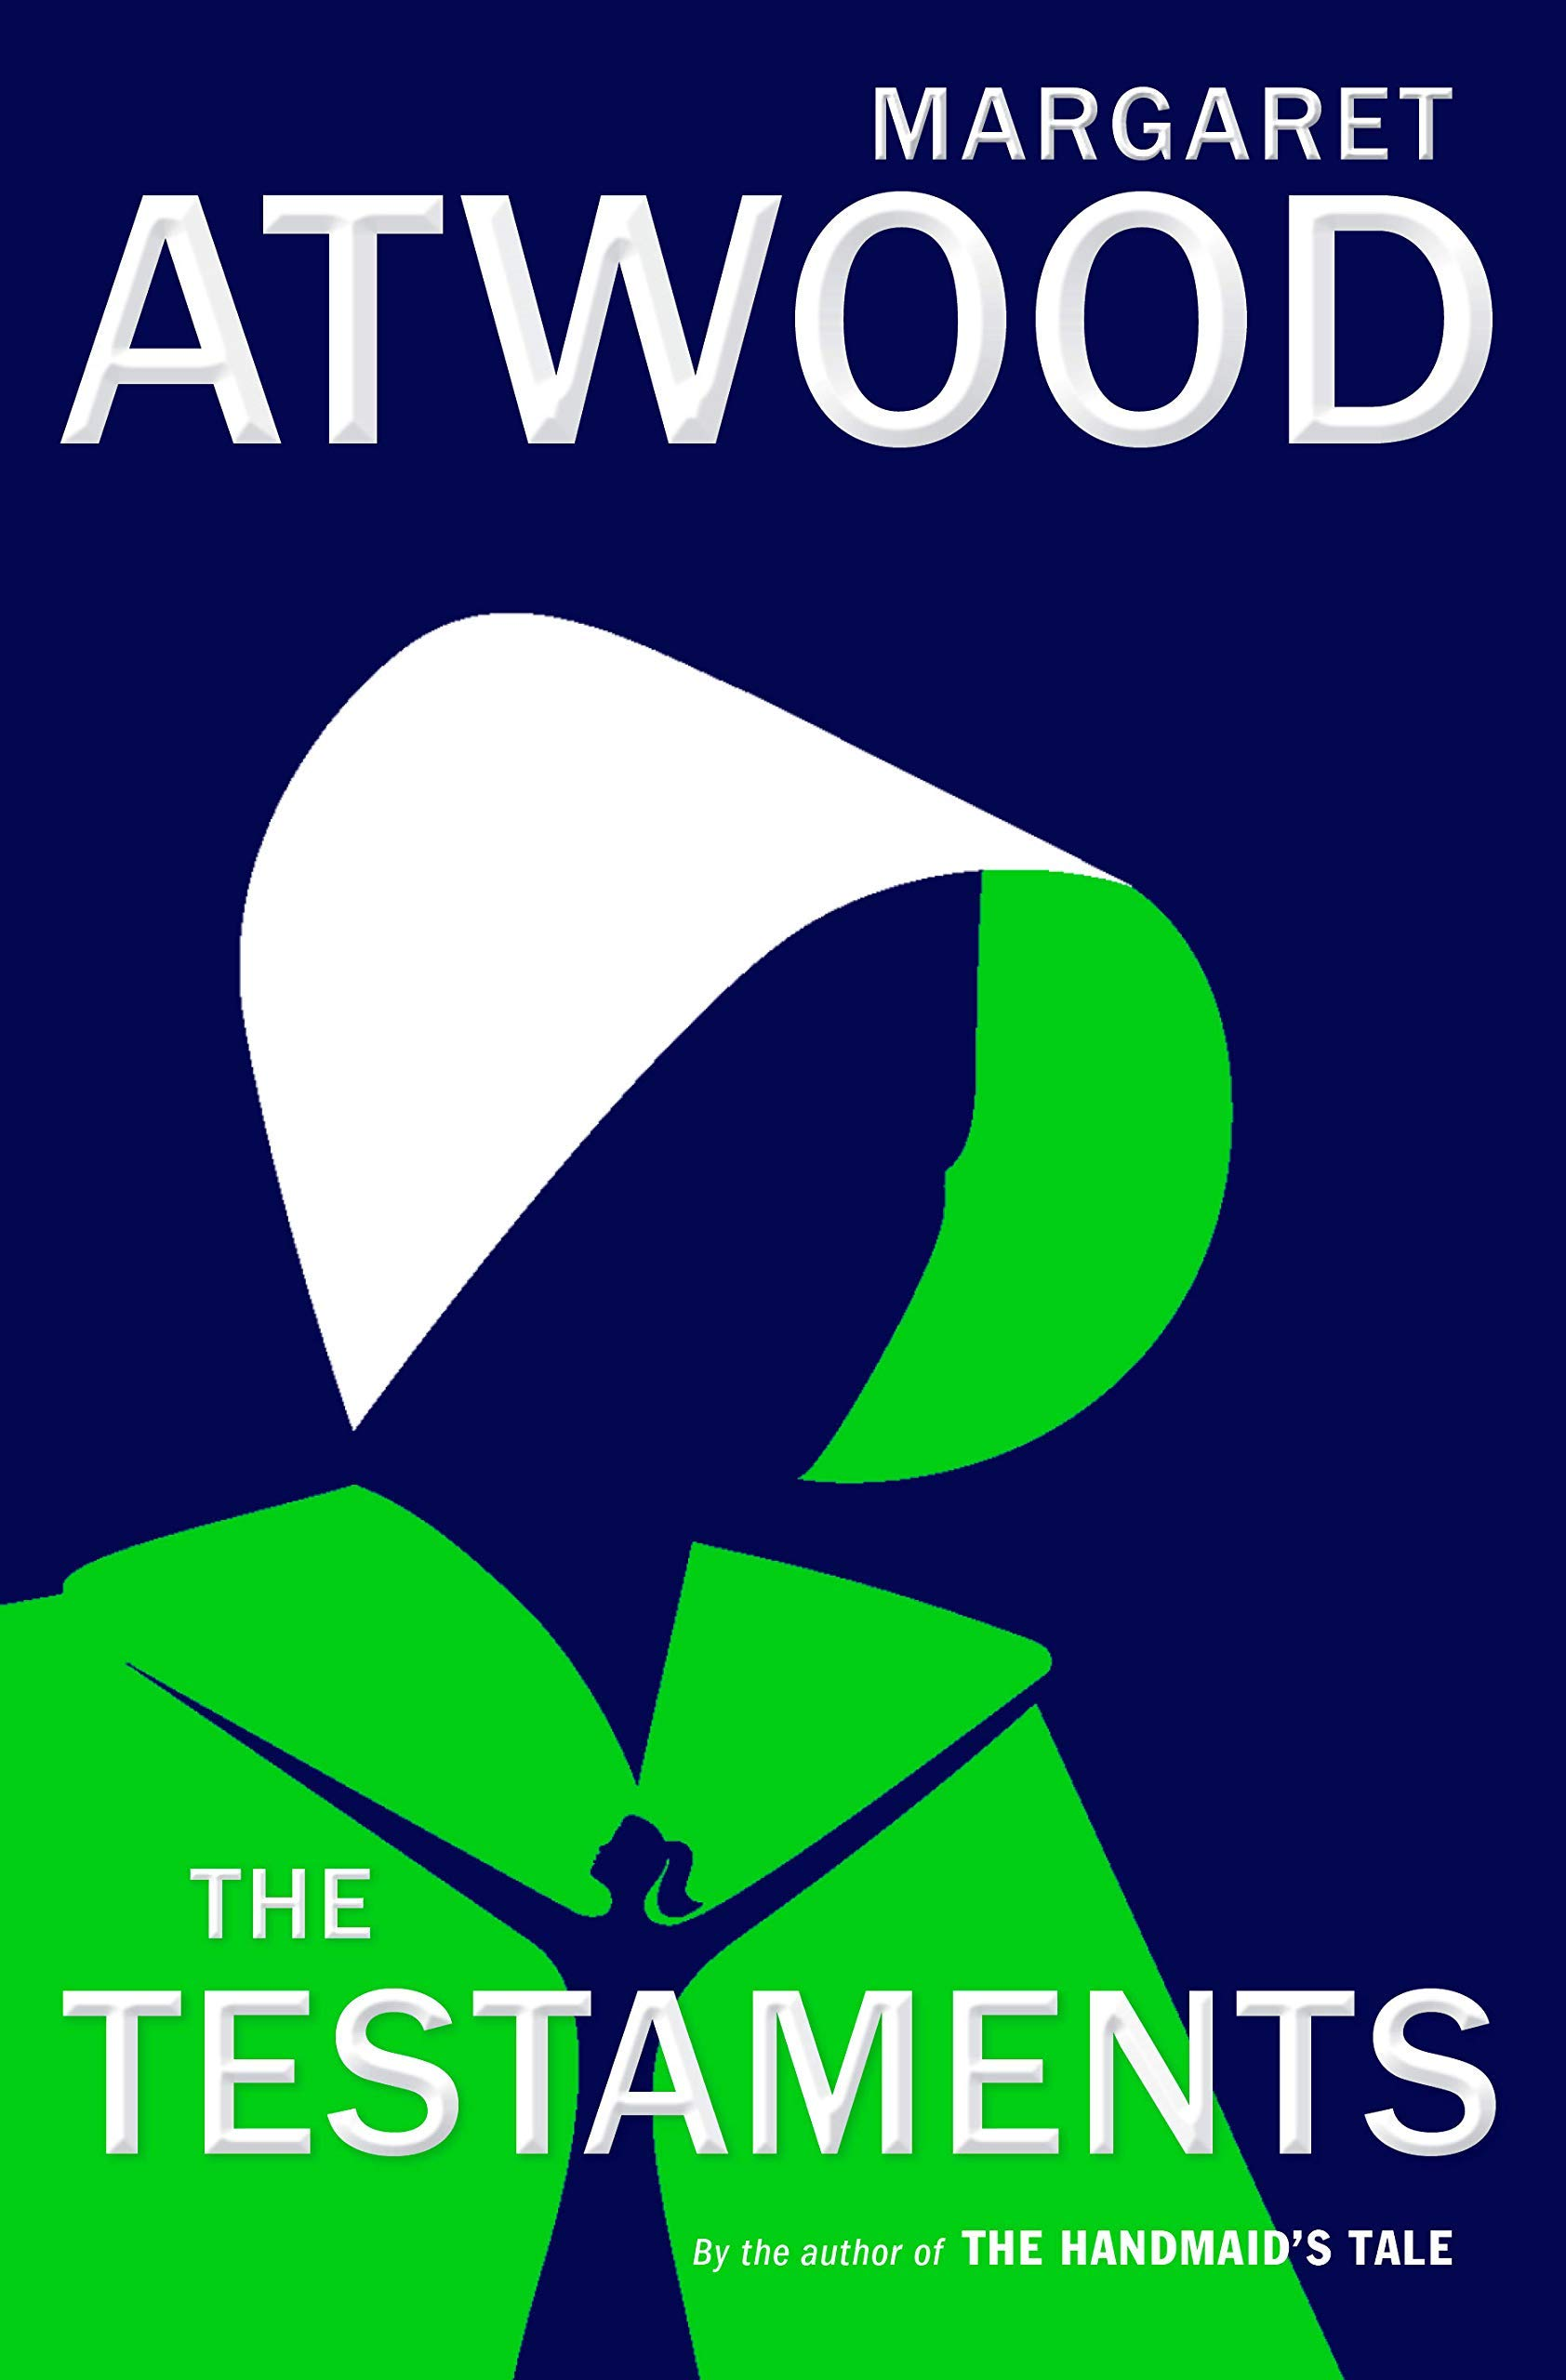 Image of Margaret Atwood's The Testaments Book Cover